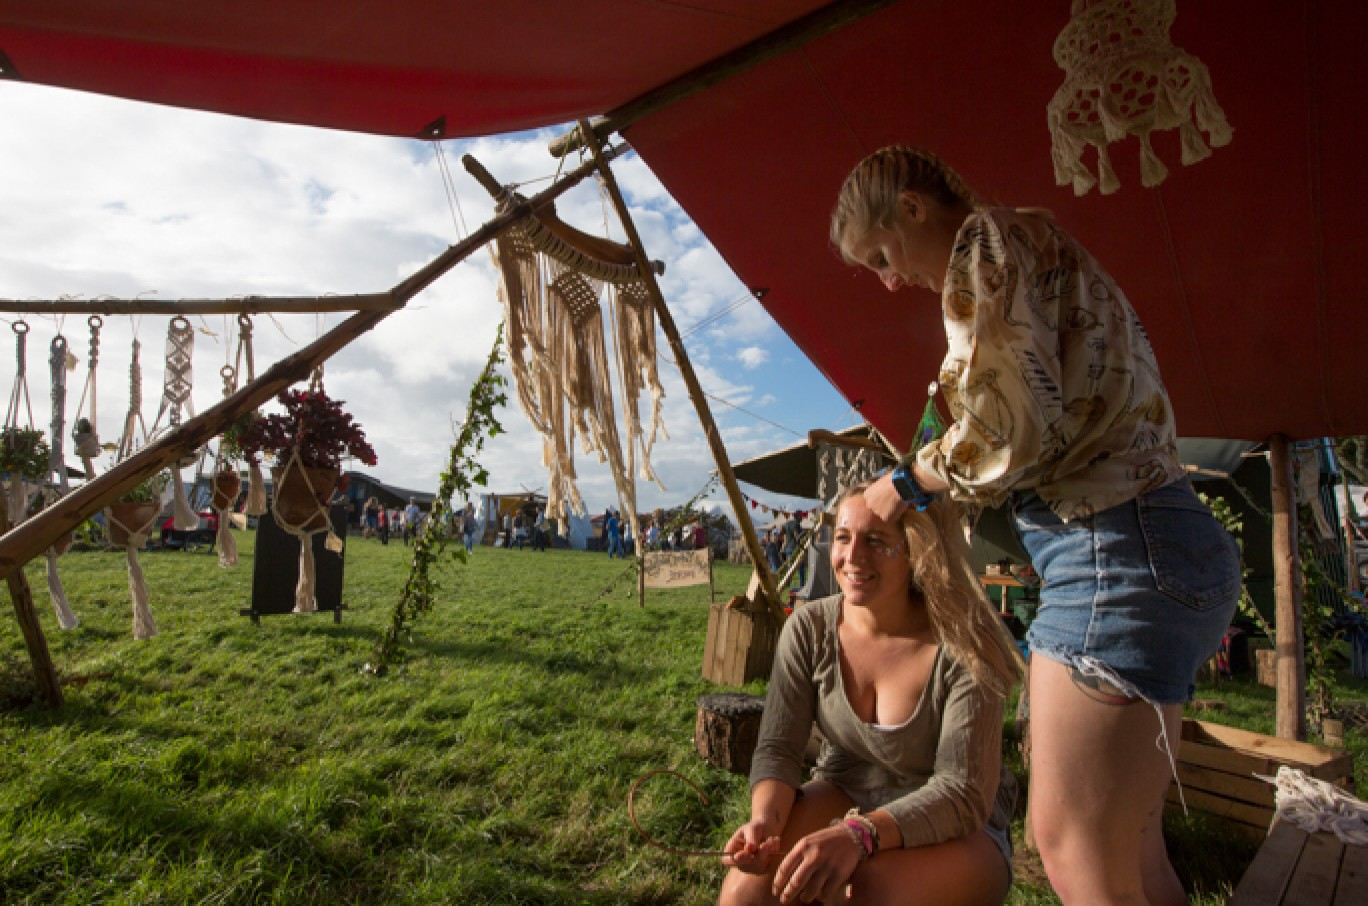 6_137-camp-bestival-thursday-1061501585113